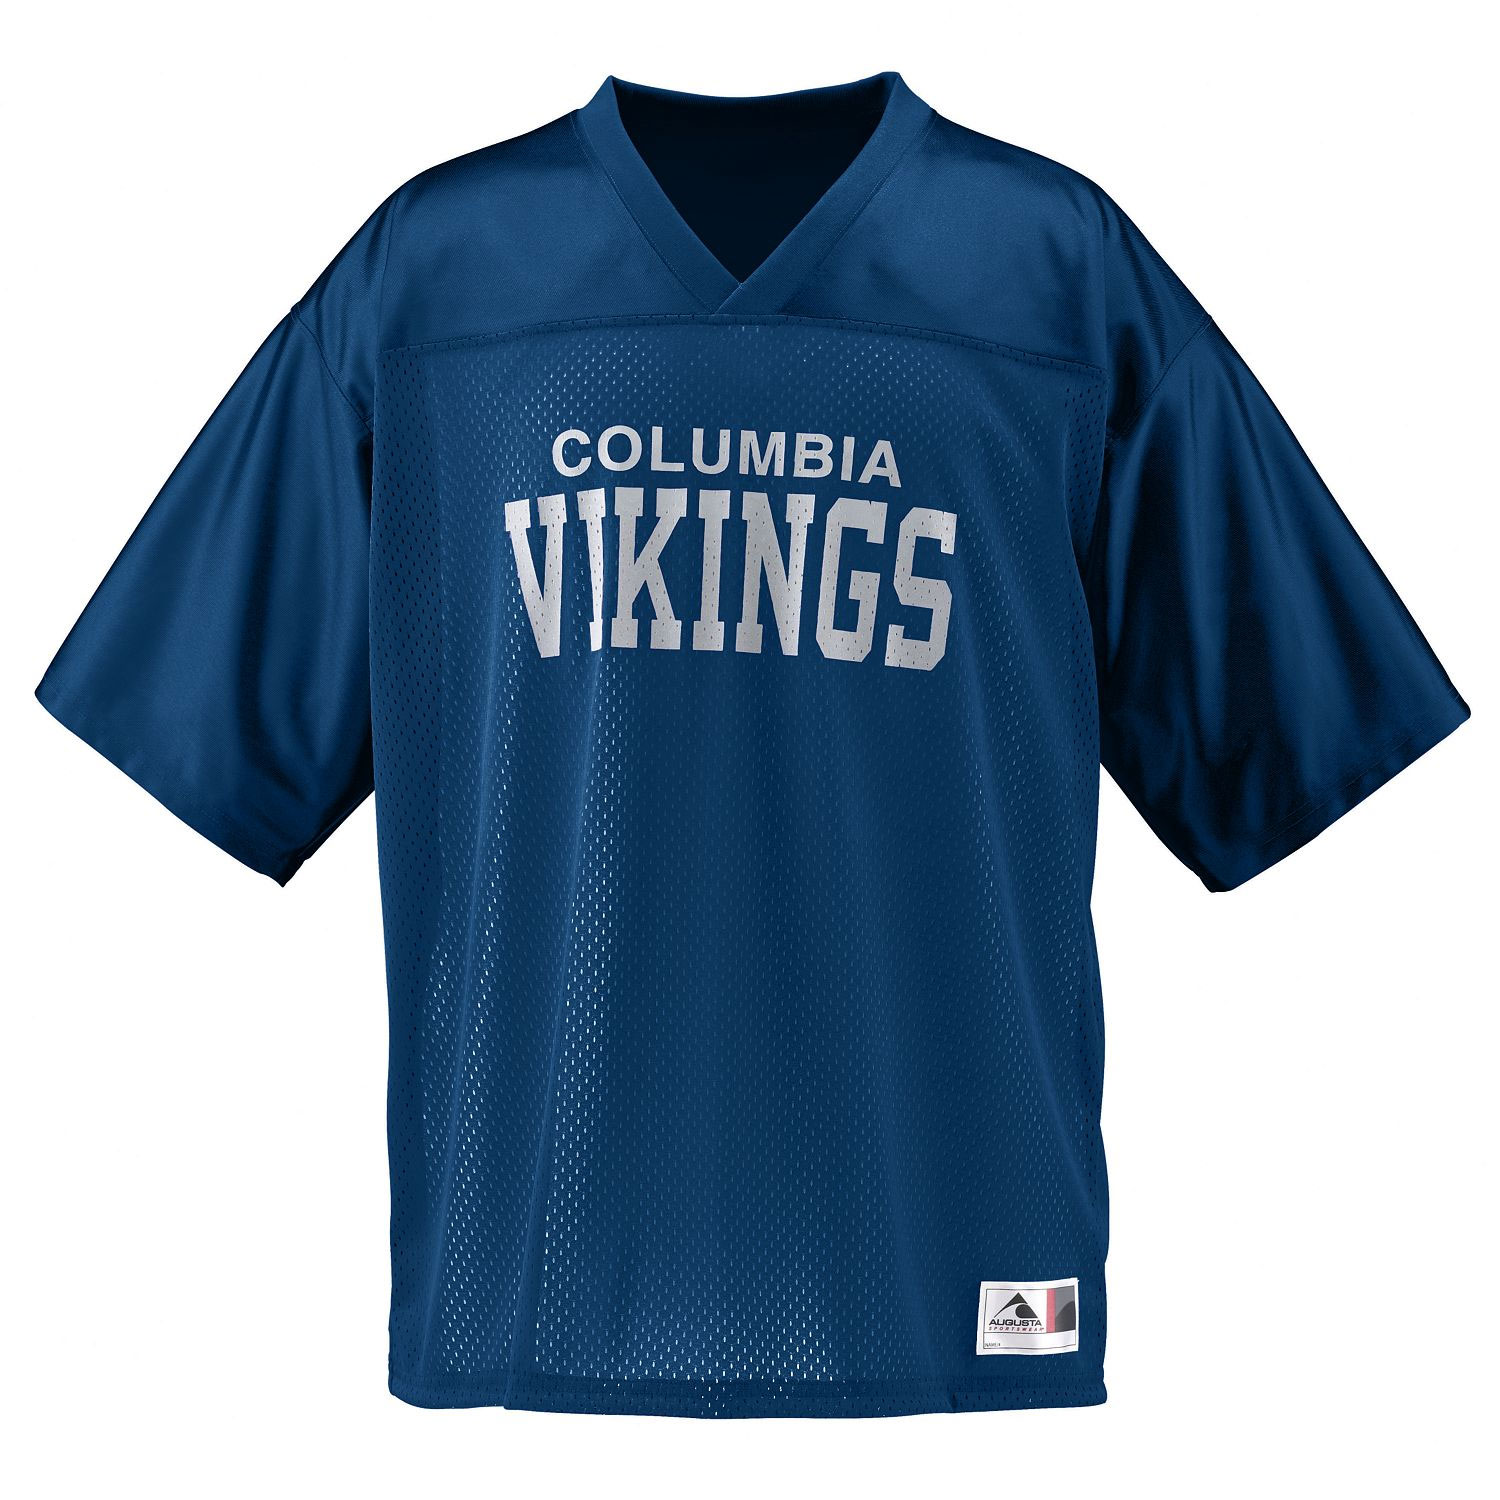 Augusta Youth Stadium Replica Football Jersey